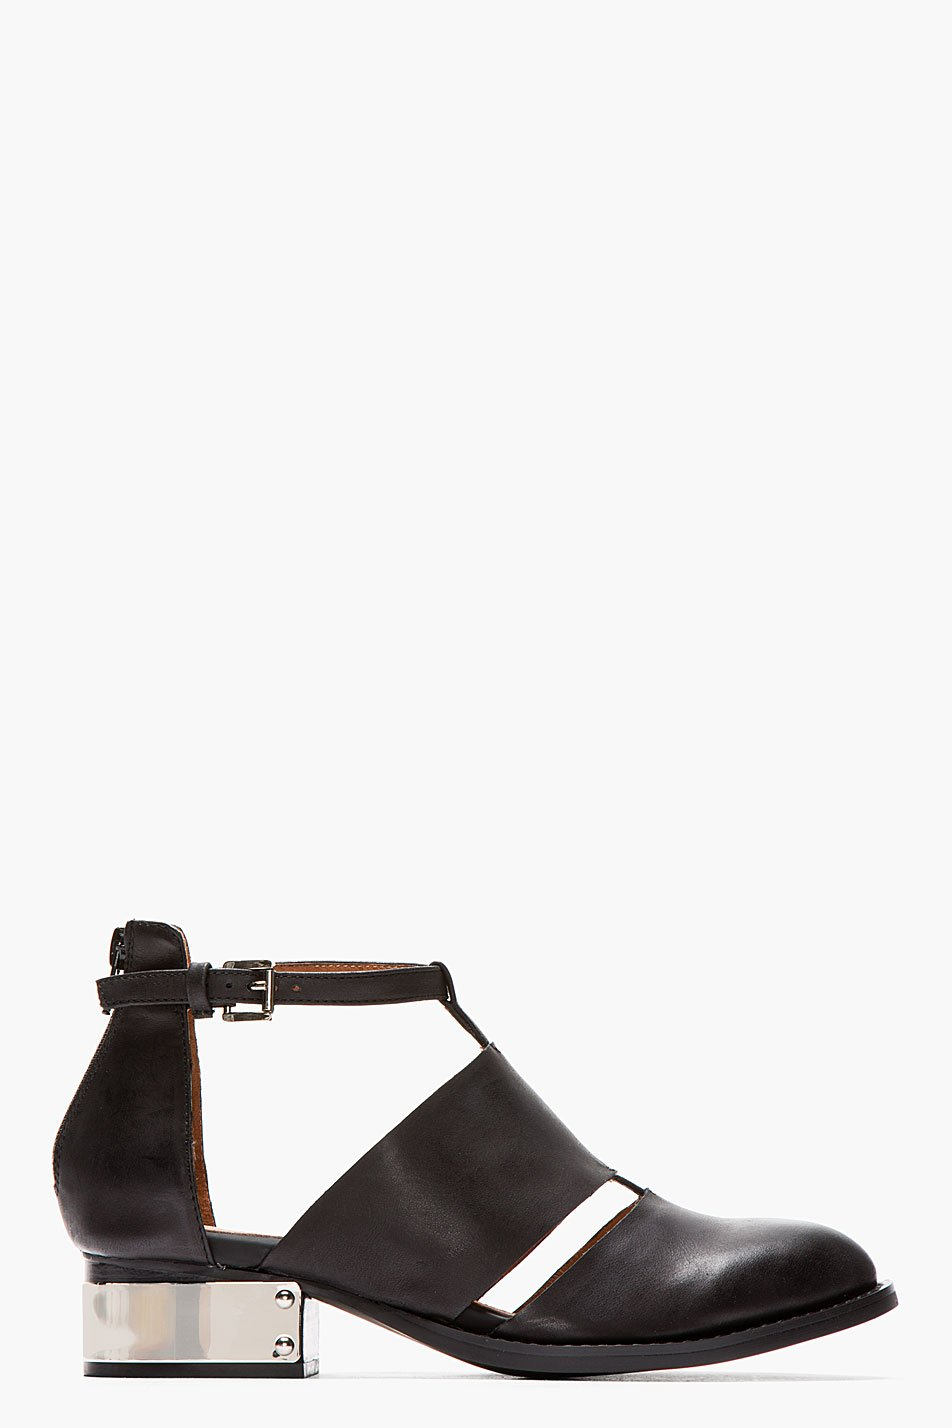 jeffrey campbell ssense exclusive black washed leather and silver carina flats